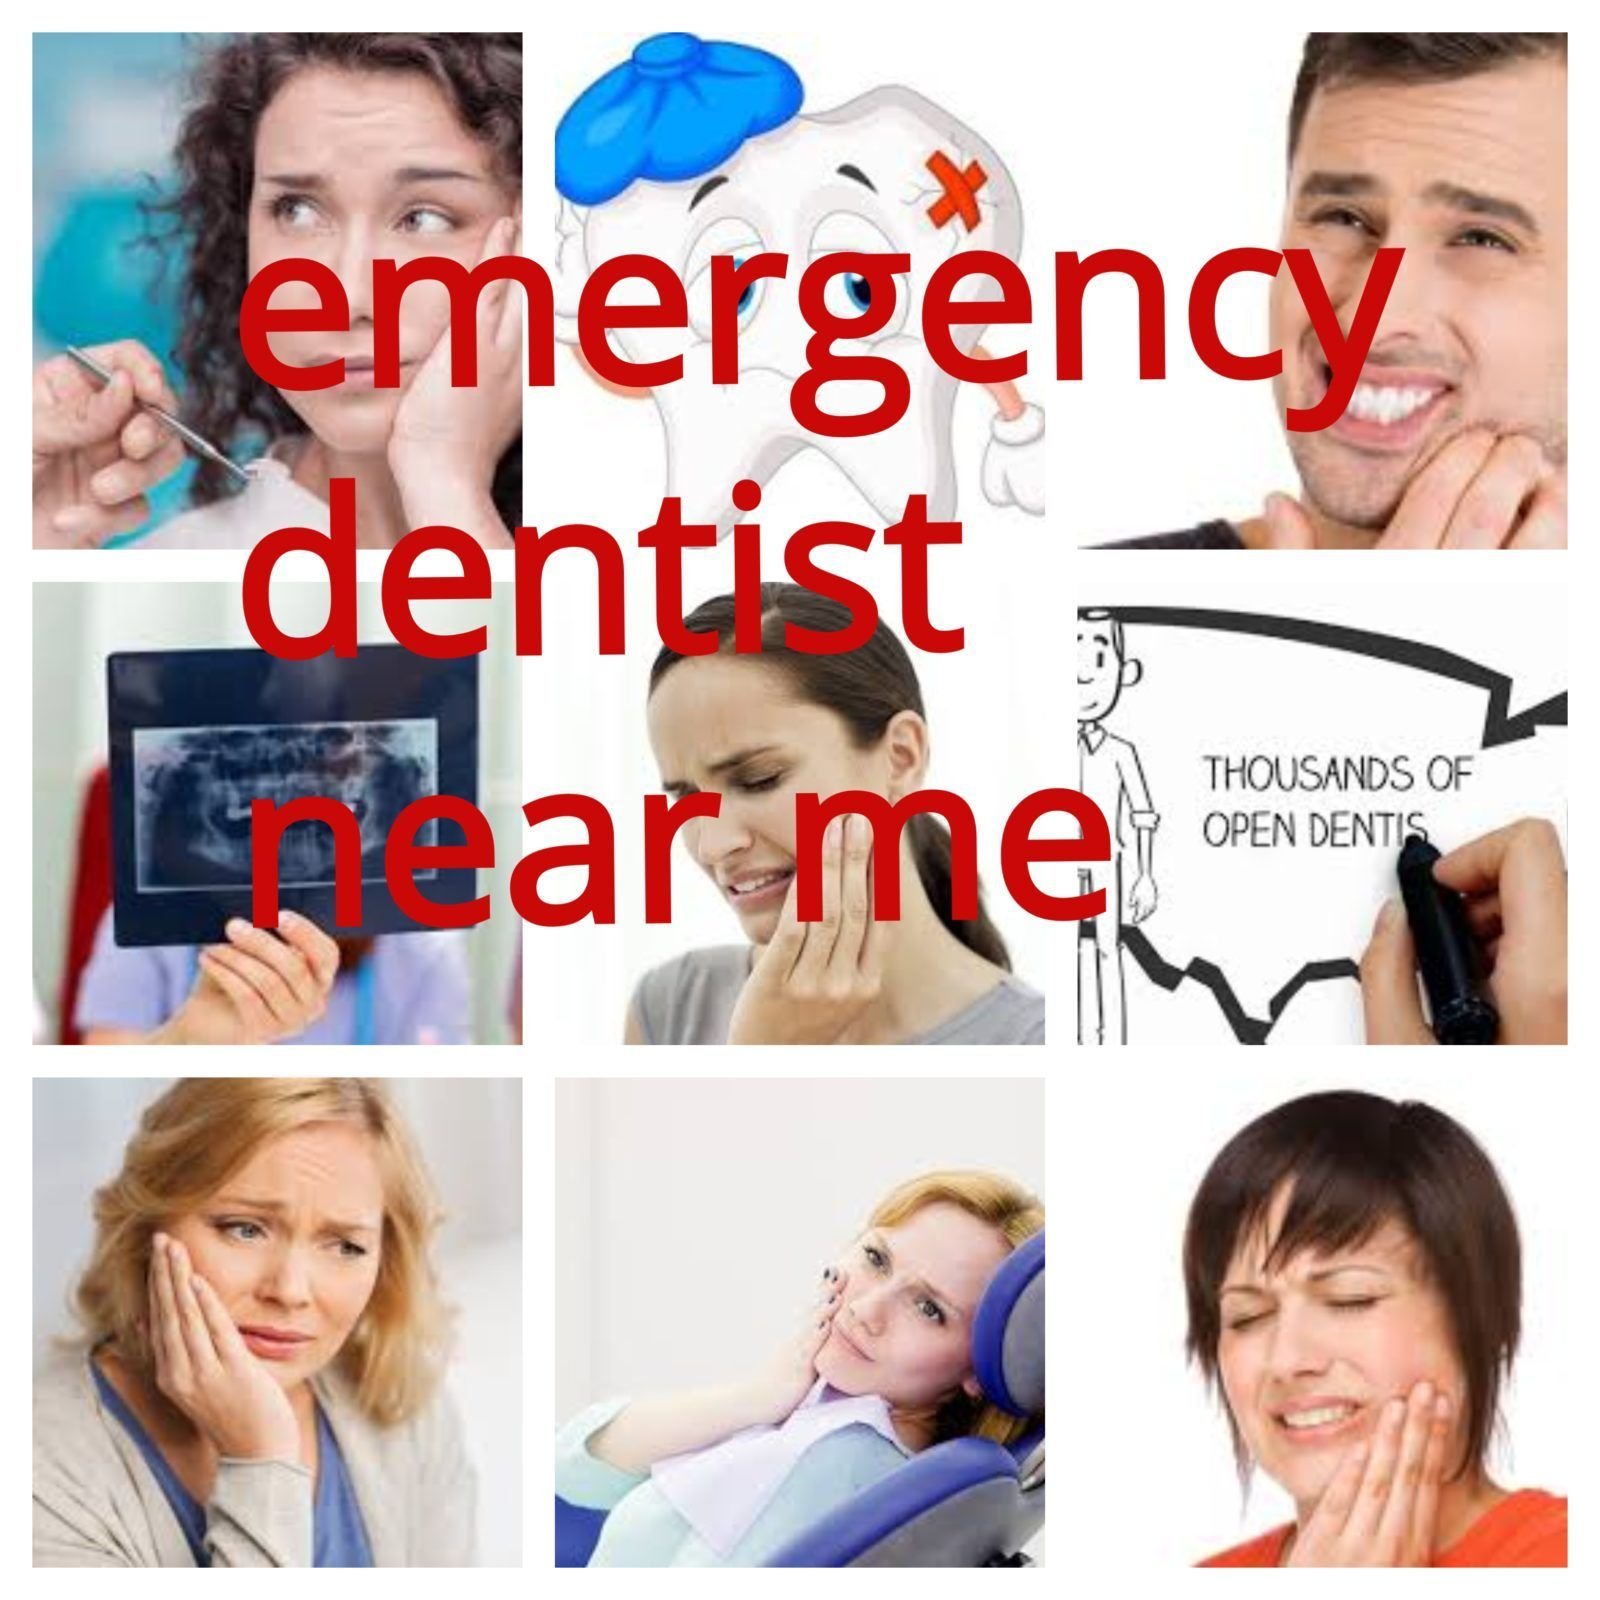 How to find the emergency dentist near me 24 hours in 2020